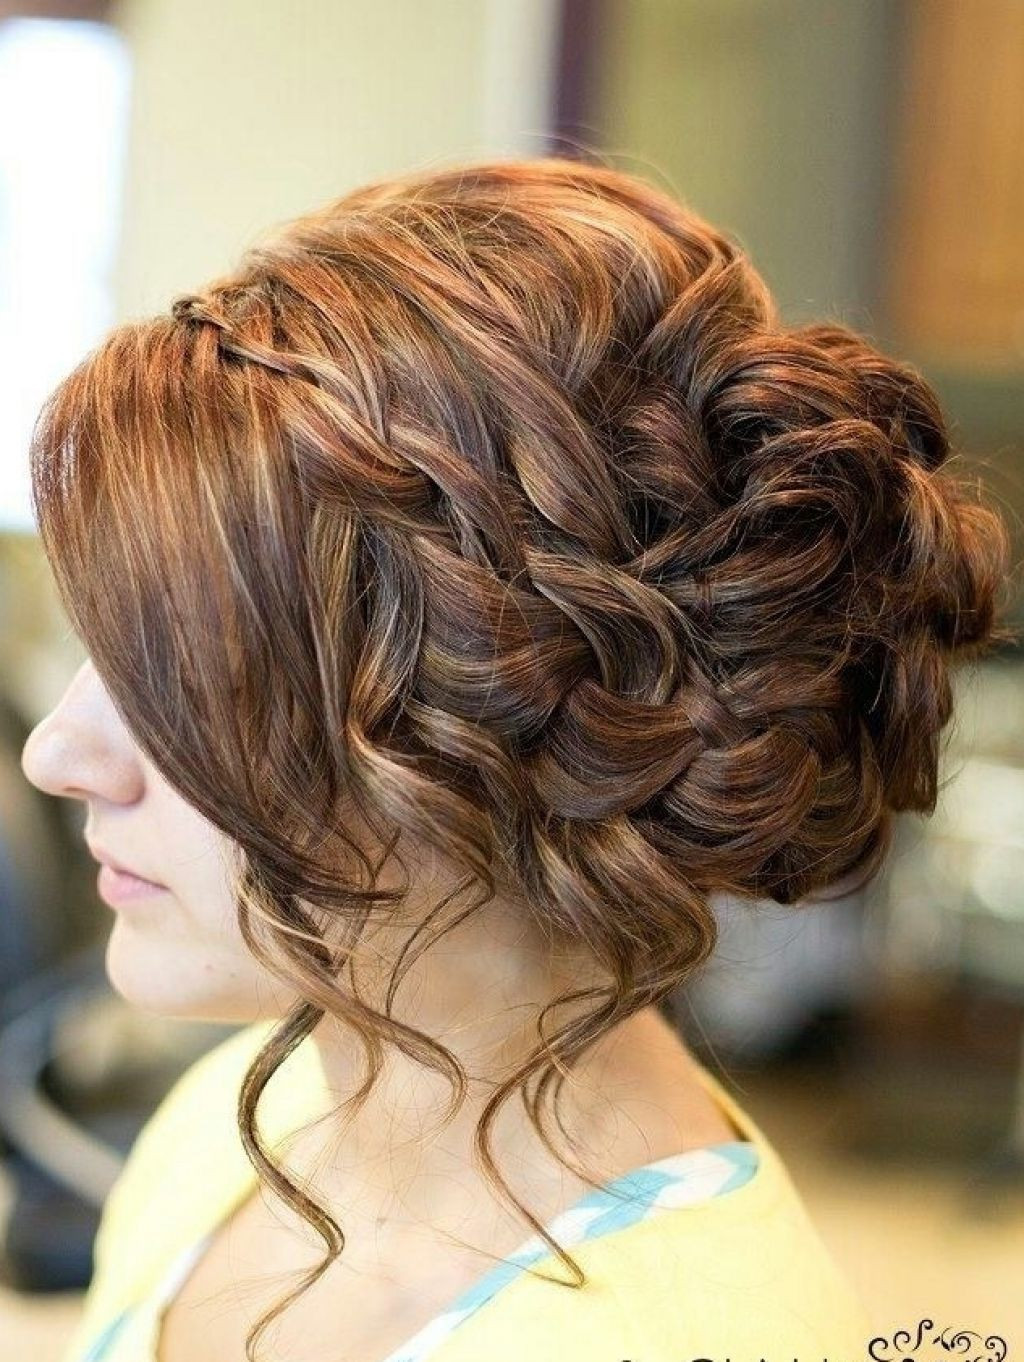 Prom Hairstyles With Braid  14 Prom Hairstyles For Long Hair That Are Simply Adorable